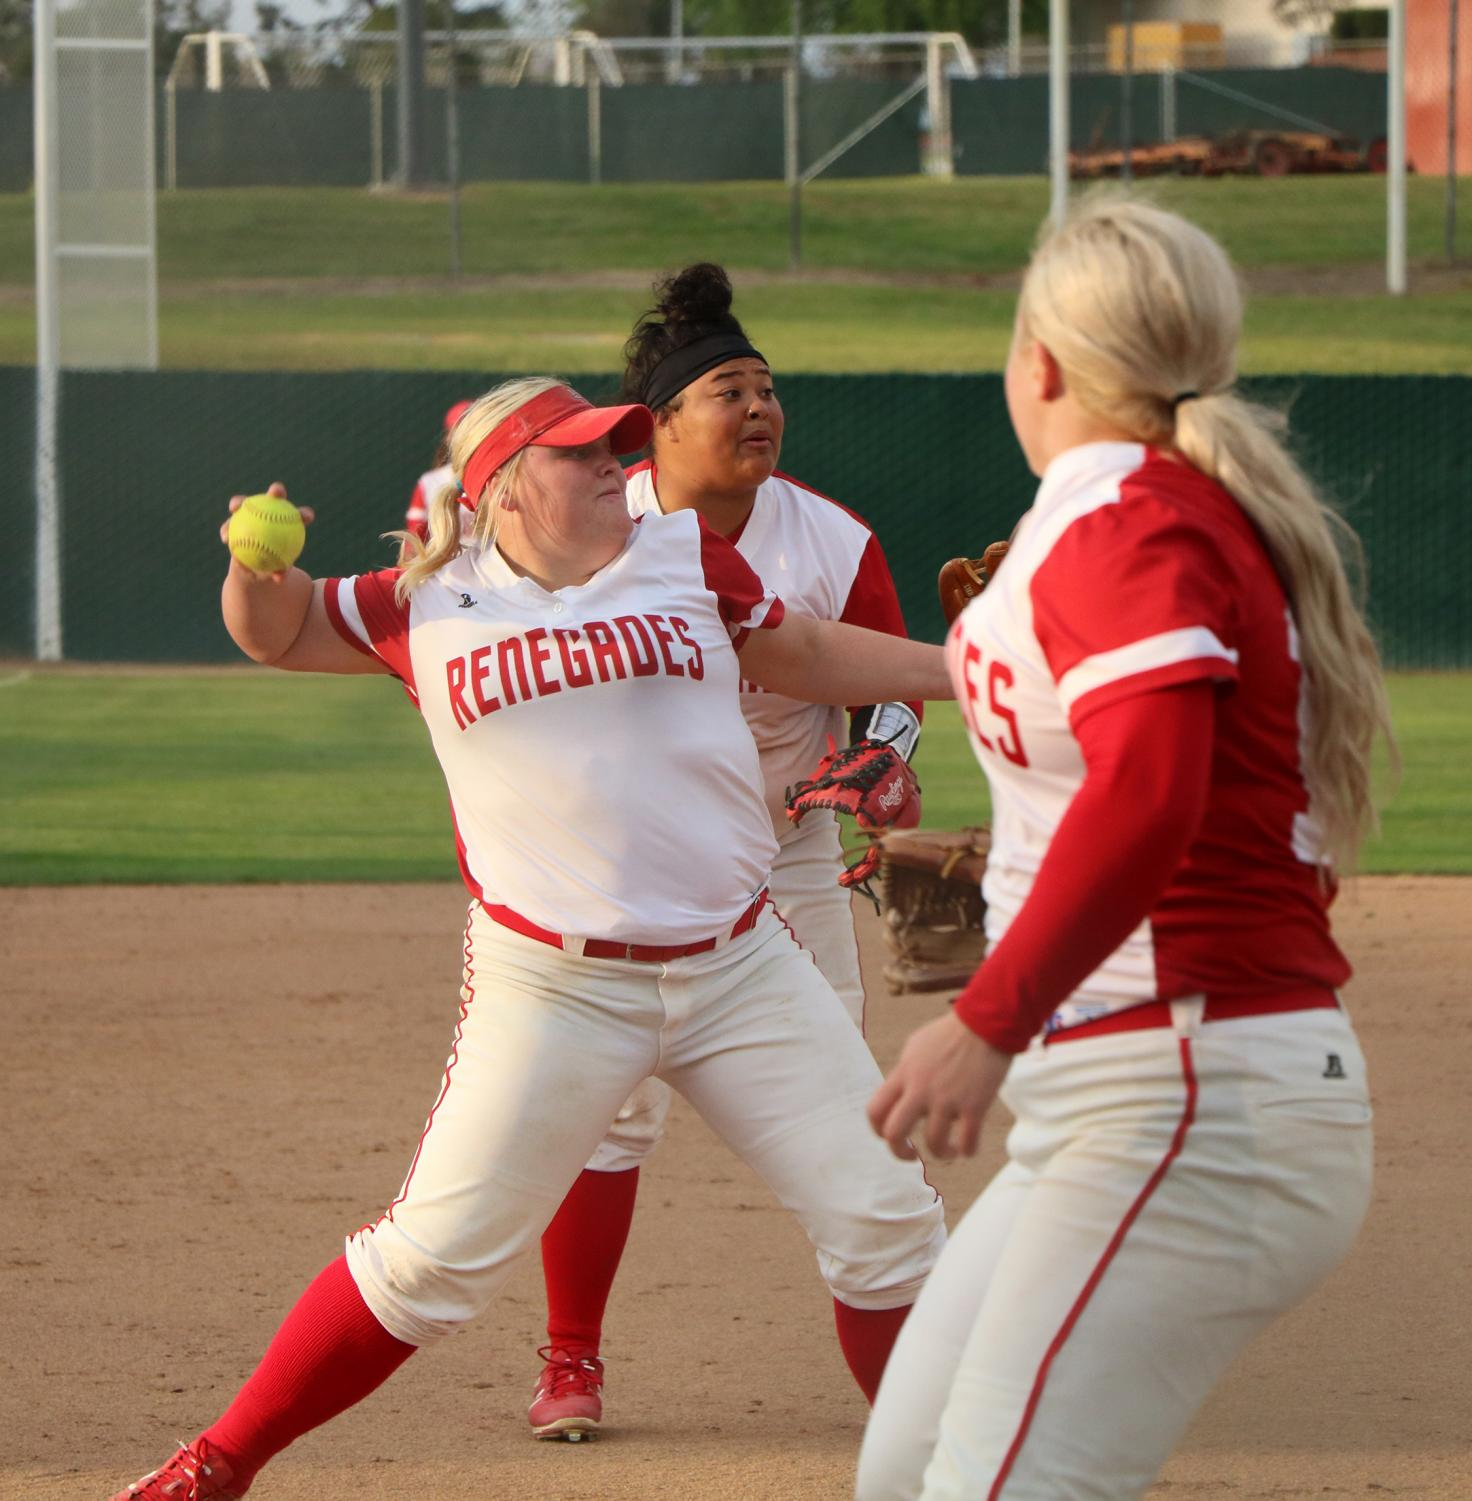 Alantis Rede (furthest back) and Natilee Parrish (close front) watching starter pitcher Kylee Fahy throwing out a bunt ball to first, on March 23.